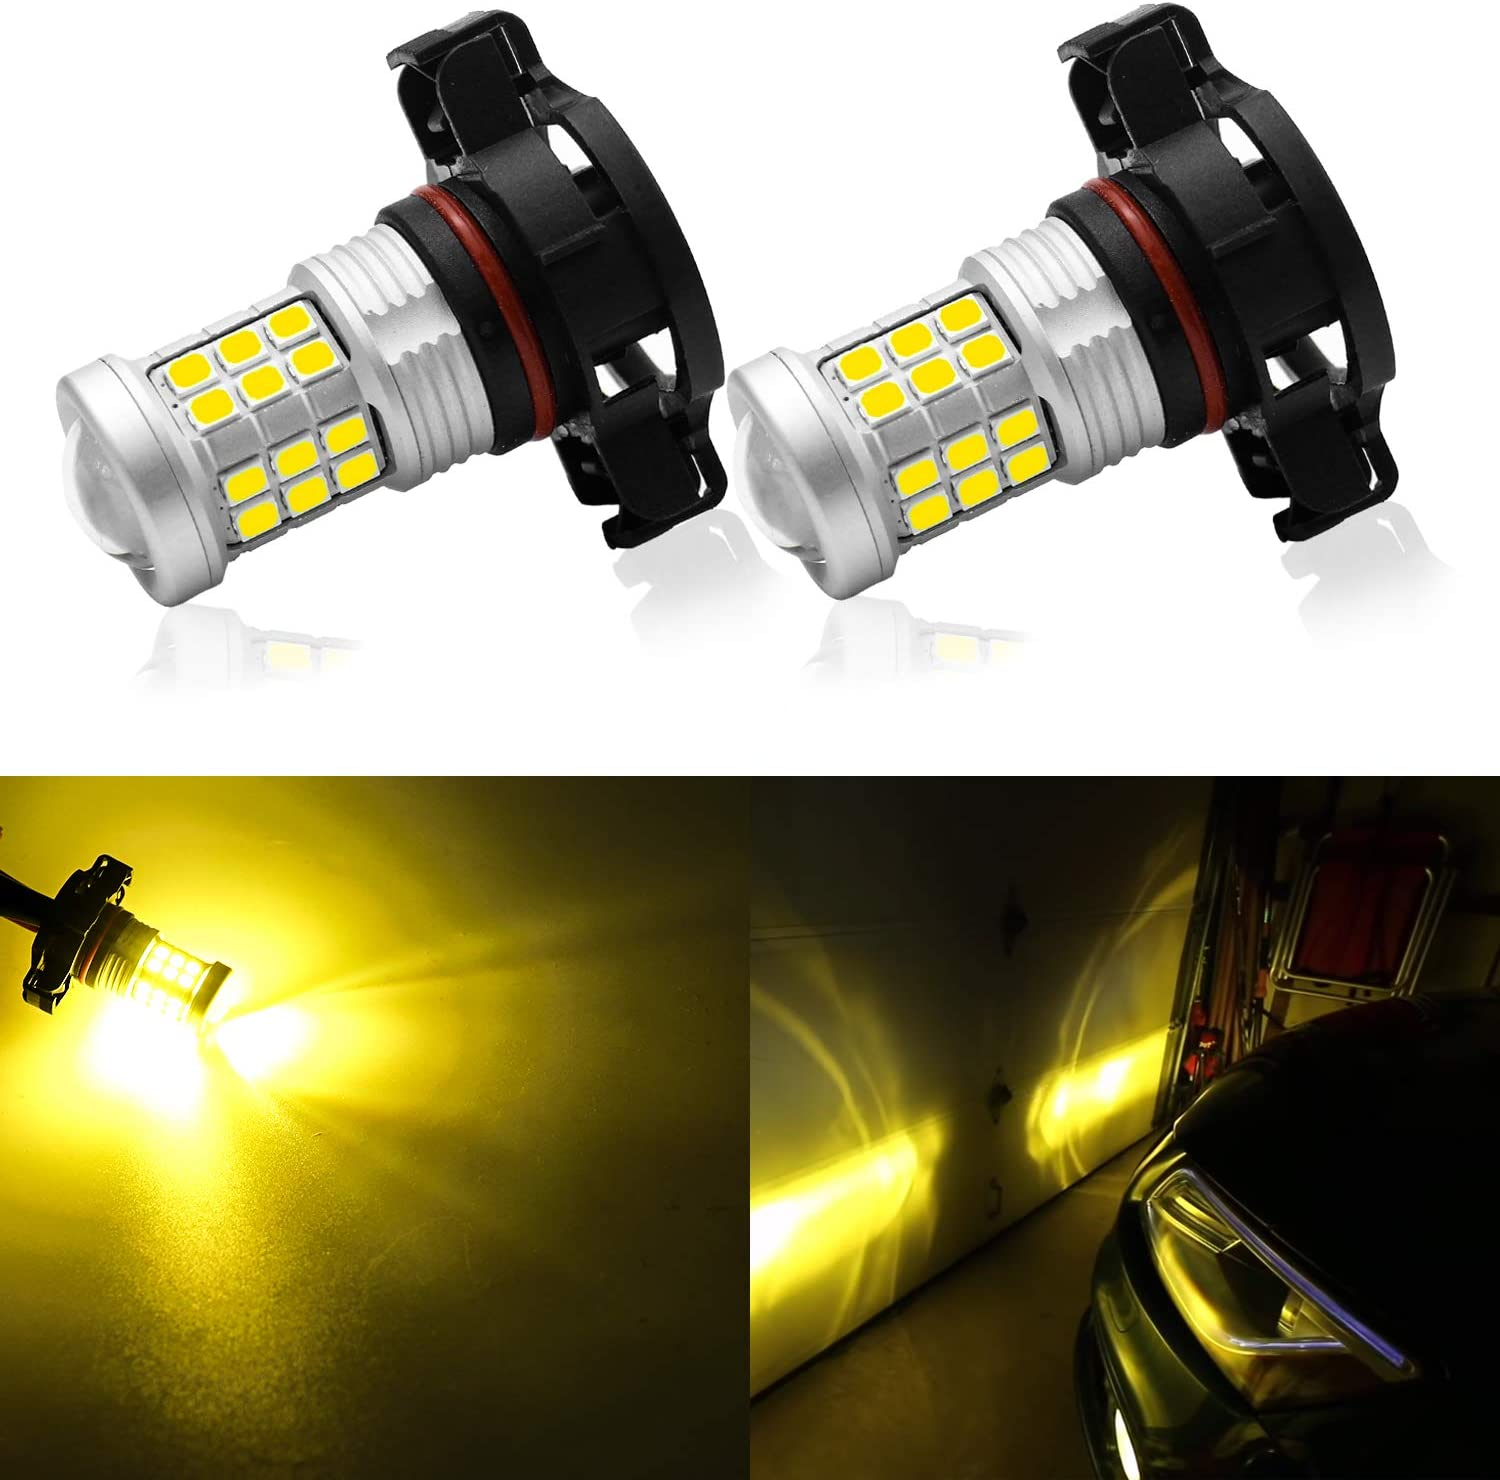 KISLED Super Bright 3000lm 5201 5202 LED Fog Lights Bulbs DRL High Power 3030 Chips with Projector Lens Replacement for Cars Trucks Golden Yellow